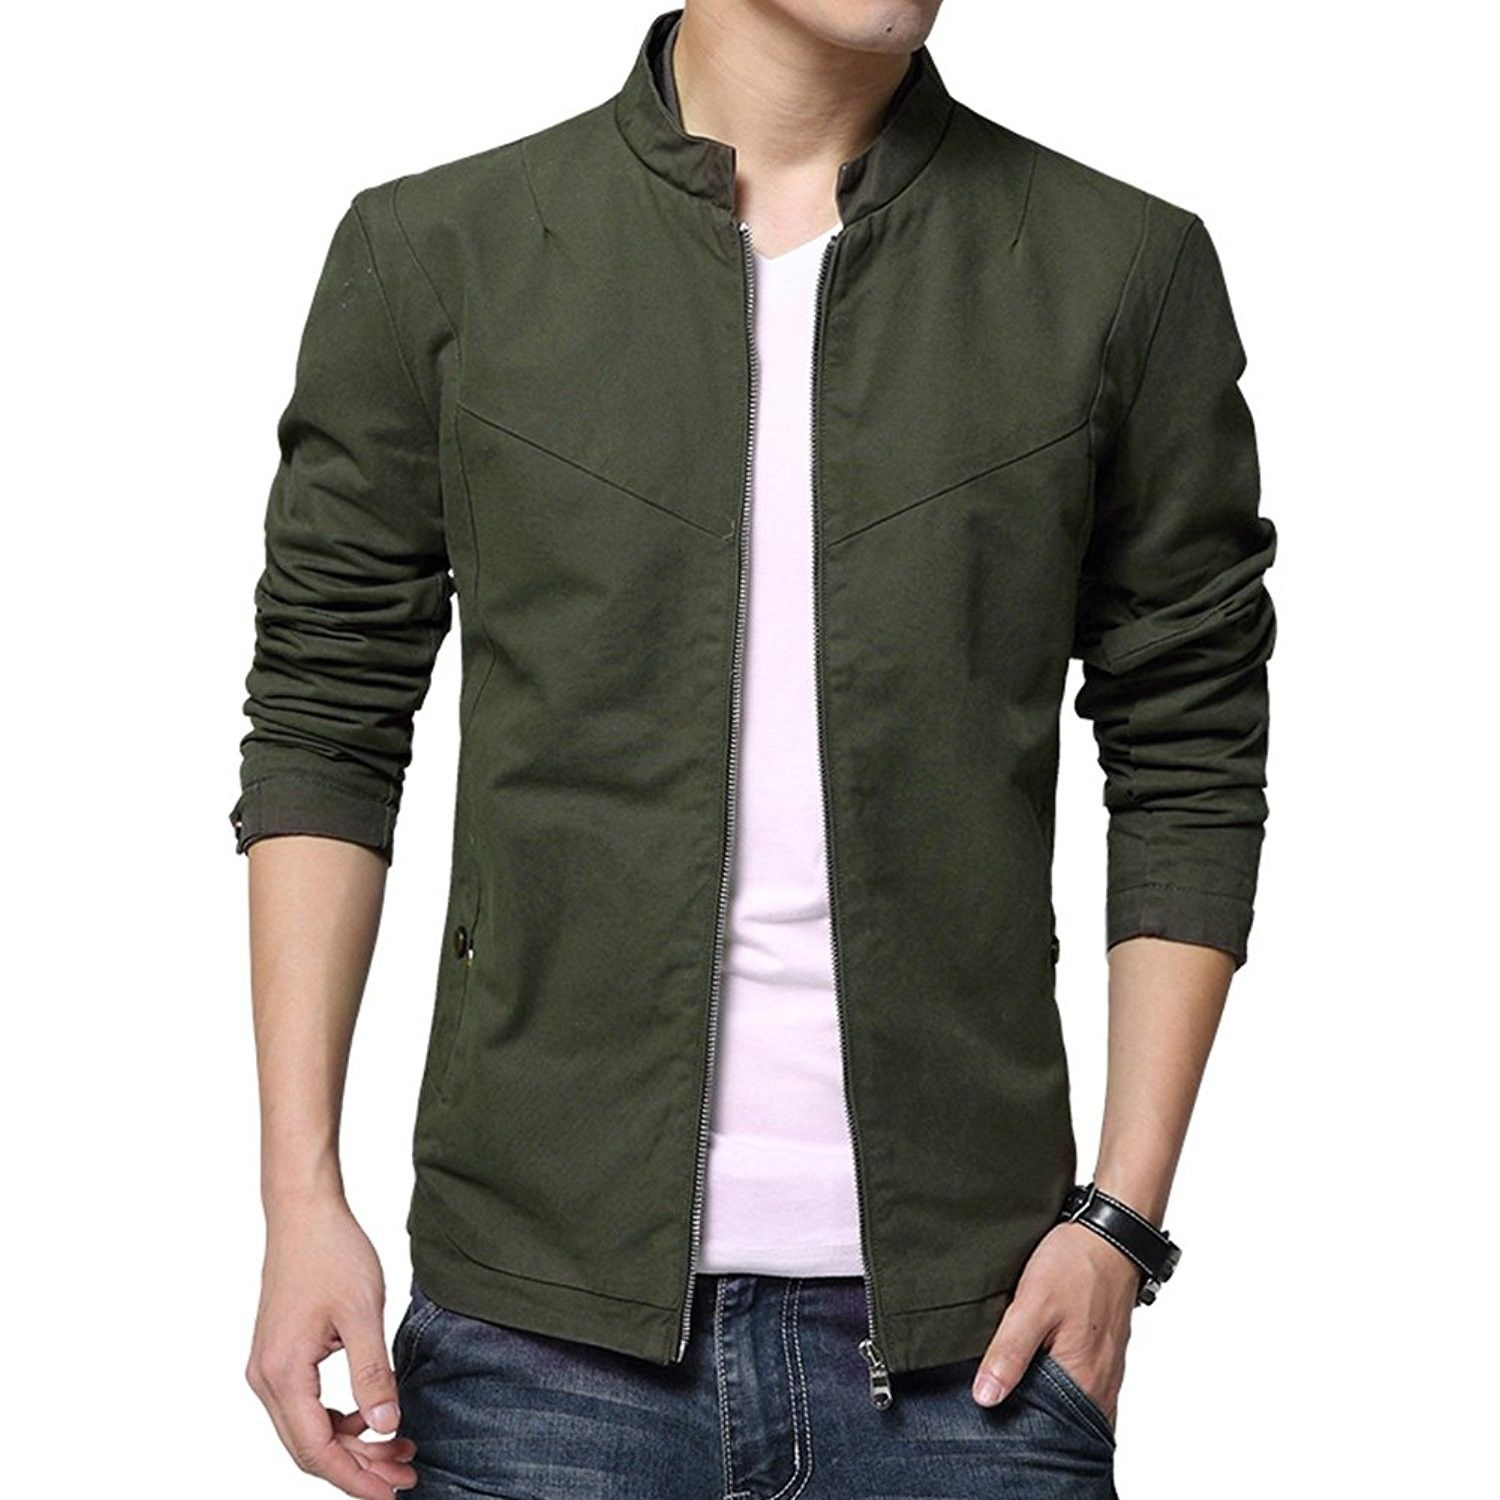 Men S Casual Stand Collar Cotton Jacket Coat Outerwear Army Green Cc17yteomad Mens Outerwear Jacket Mens Outfits Cotton Jacket [ 1500 x 1500 Pixel ]